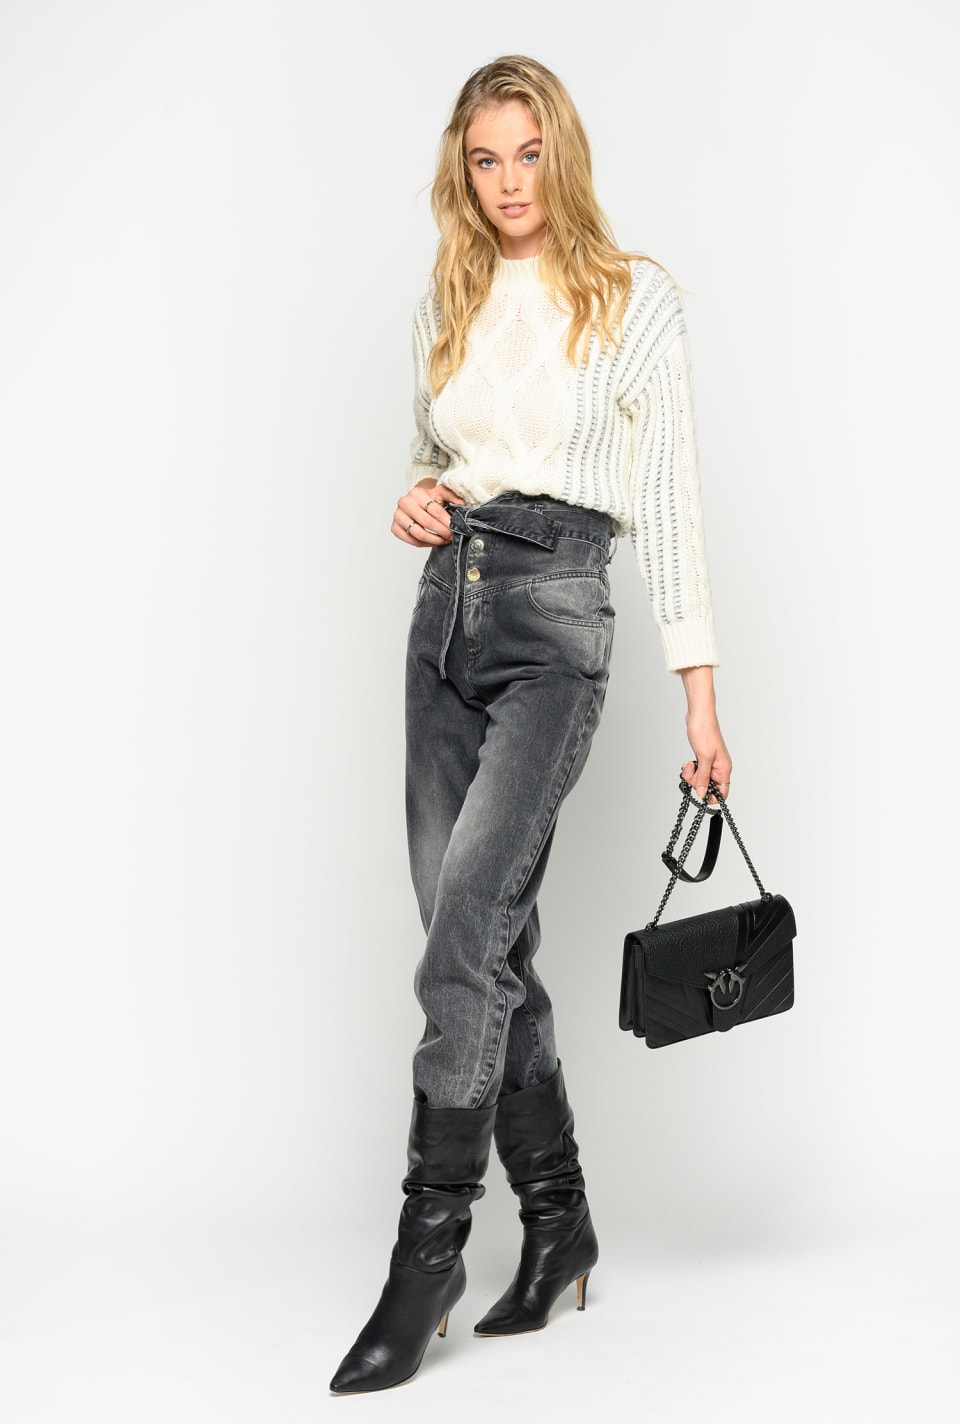 Bustier-style high-waist jeans